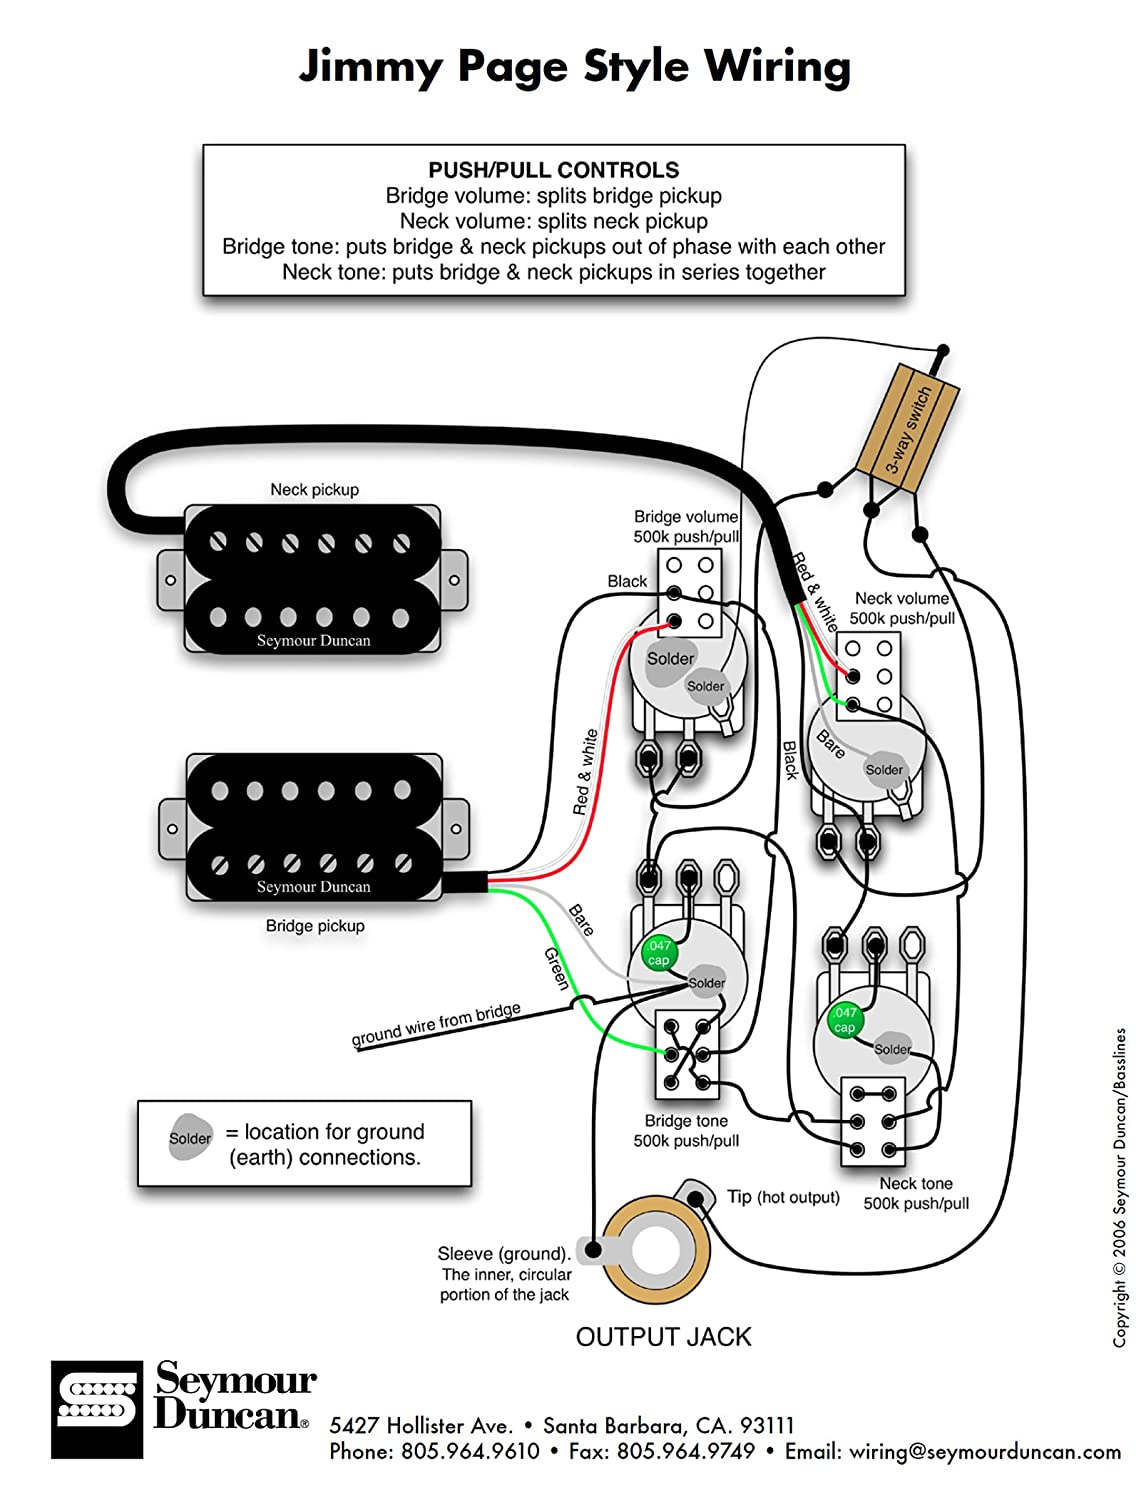 Amazon.com: 920D Custom Shop Les Paul Jimmy Page Wiring Harness  w/Switchcraft Toggle: Musical Instruments